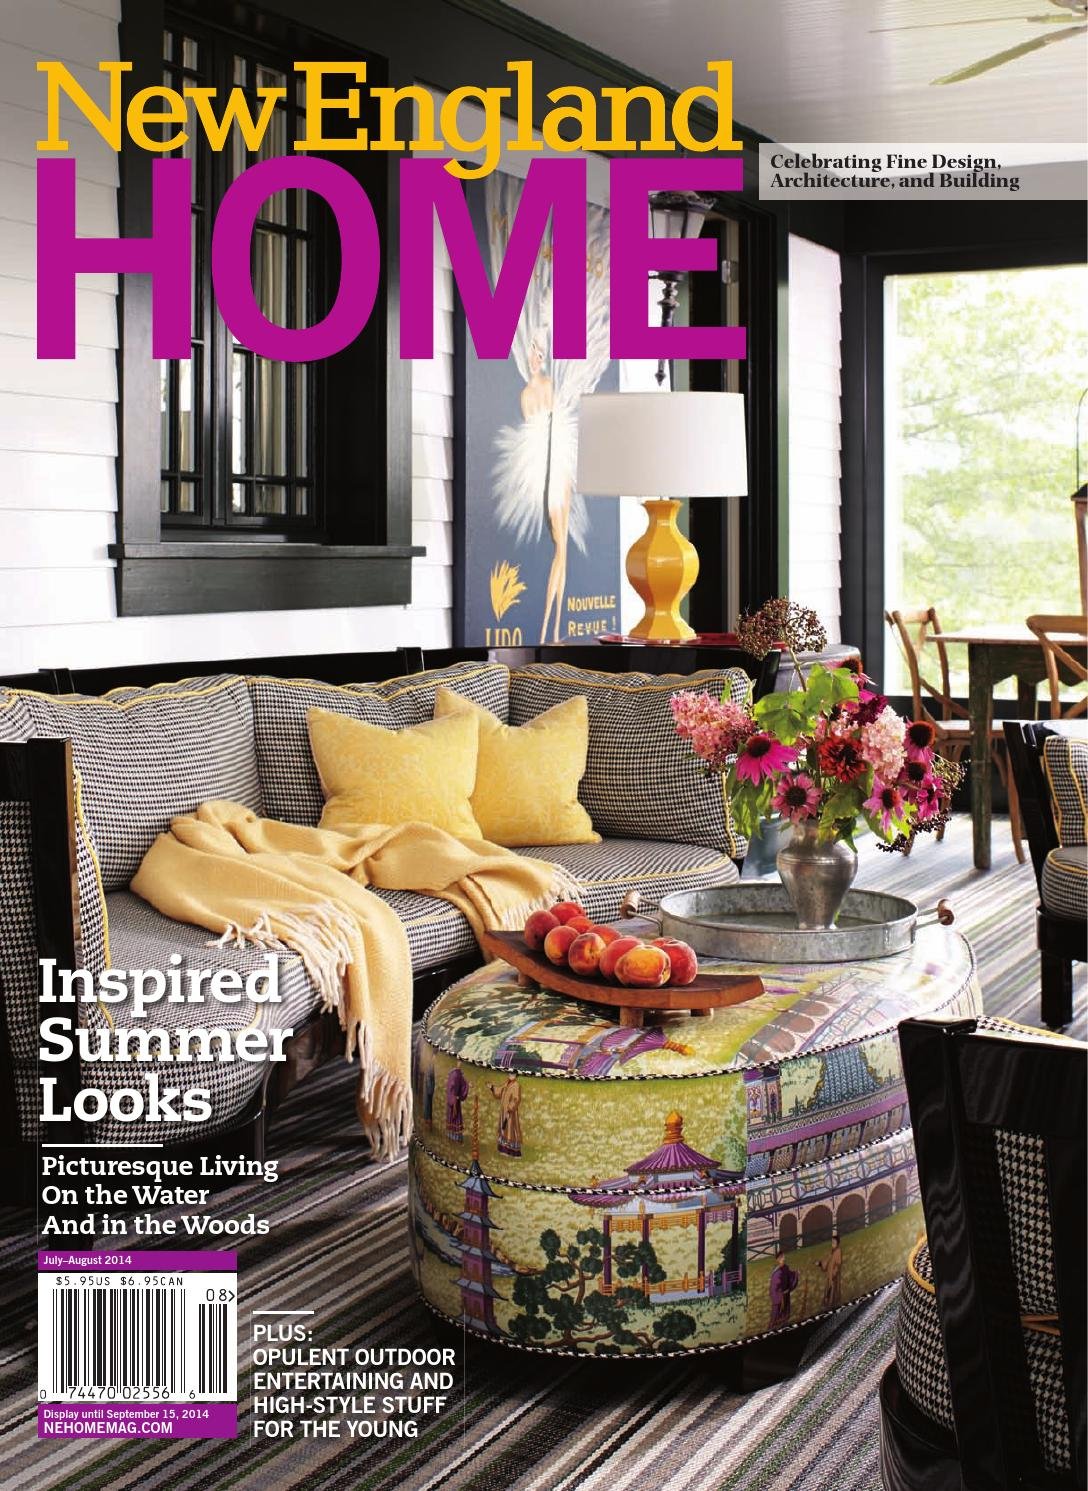 New england home july august 2014 by new england home magazine llc issuu